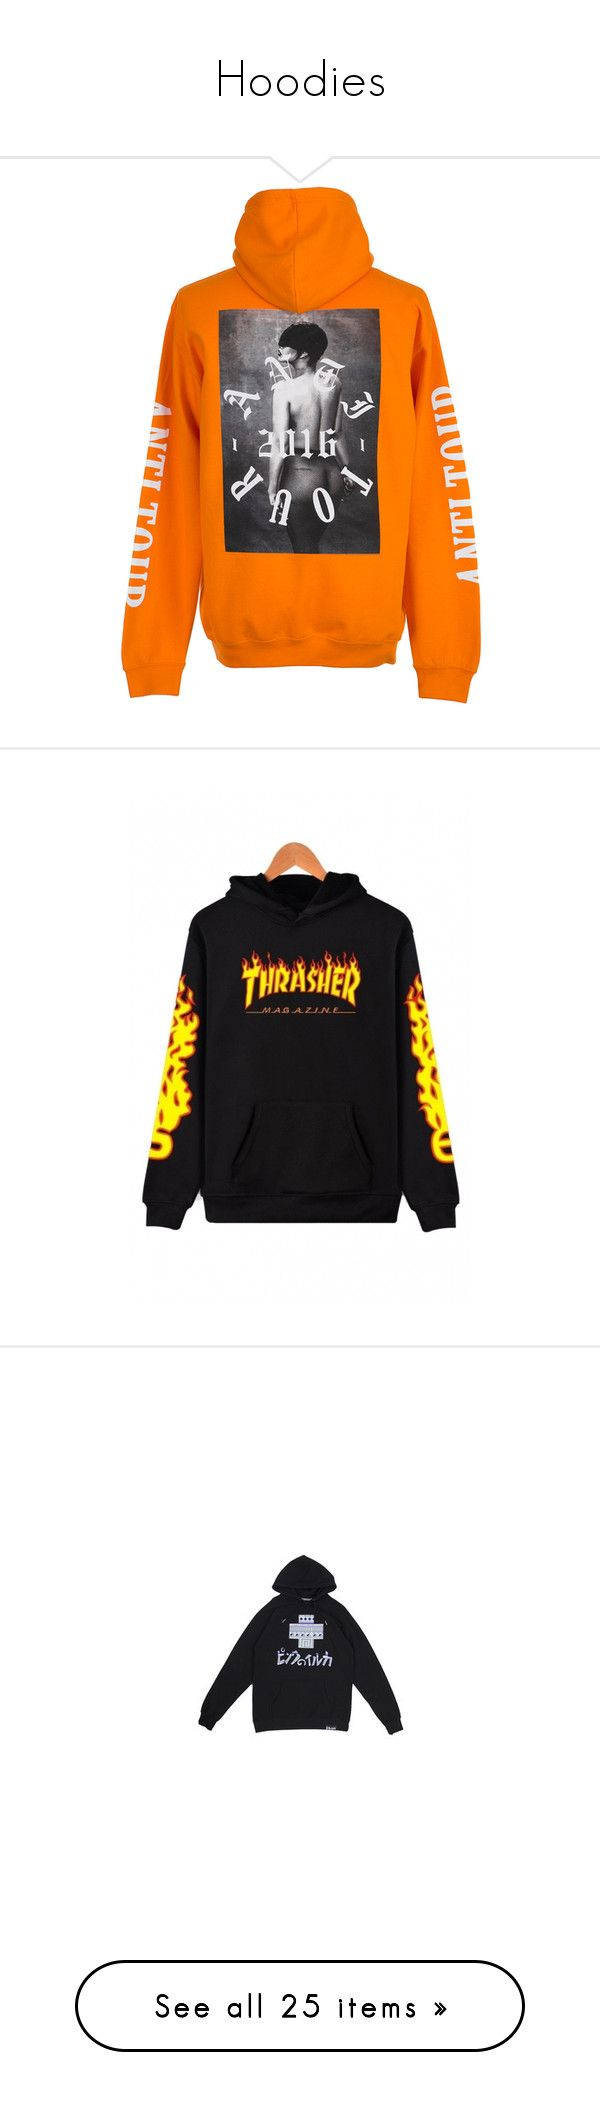 """""""Hoodies"""" by giselle123456 on Polyvore featuring tops, hoodies, jackets, sweaters, clothing - hoodies, orange hooded sweatshirt, orange hoodie, hooded pullover, orange hoodies y hooded sweatshirt"""